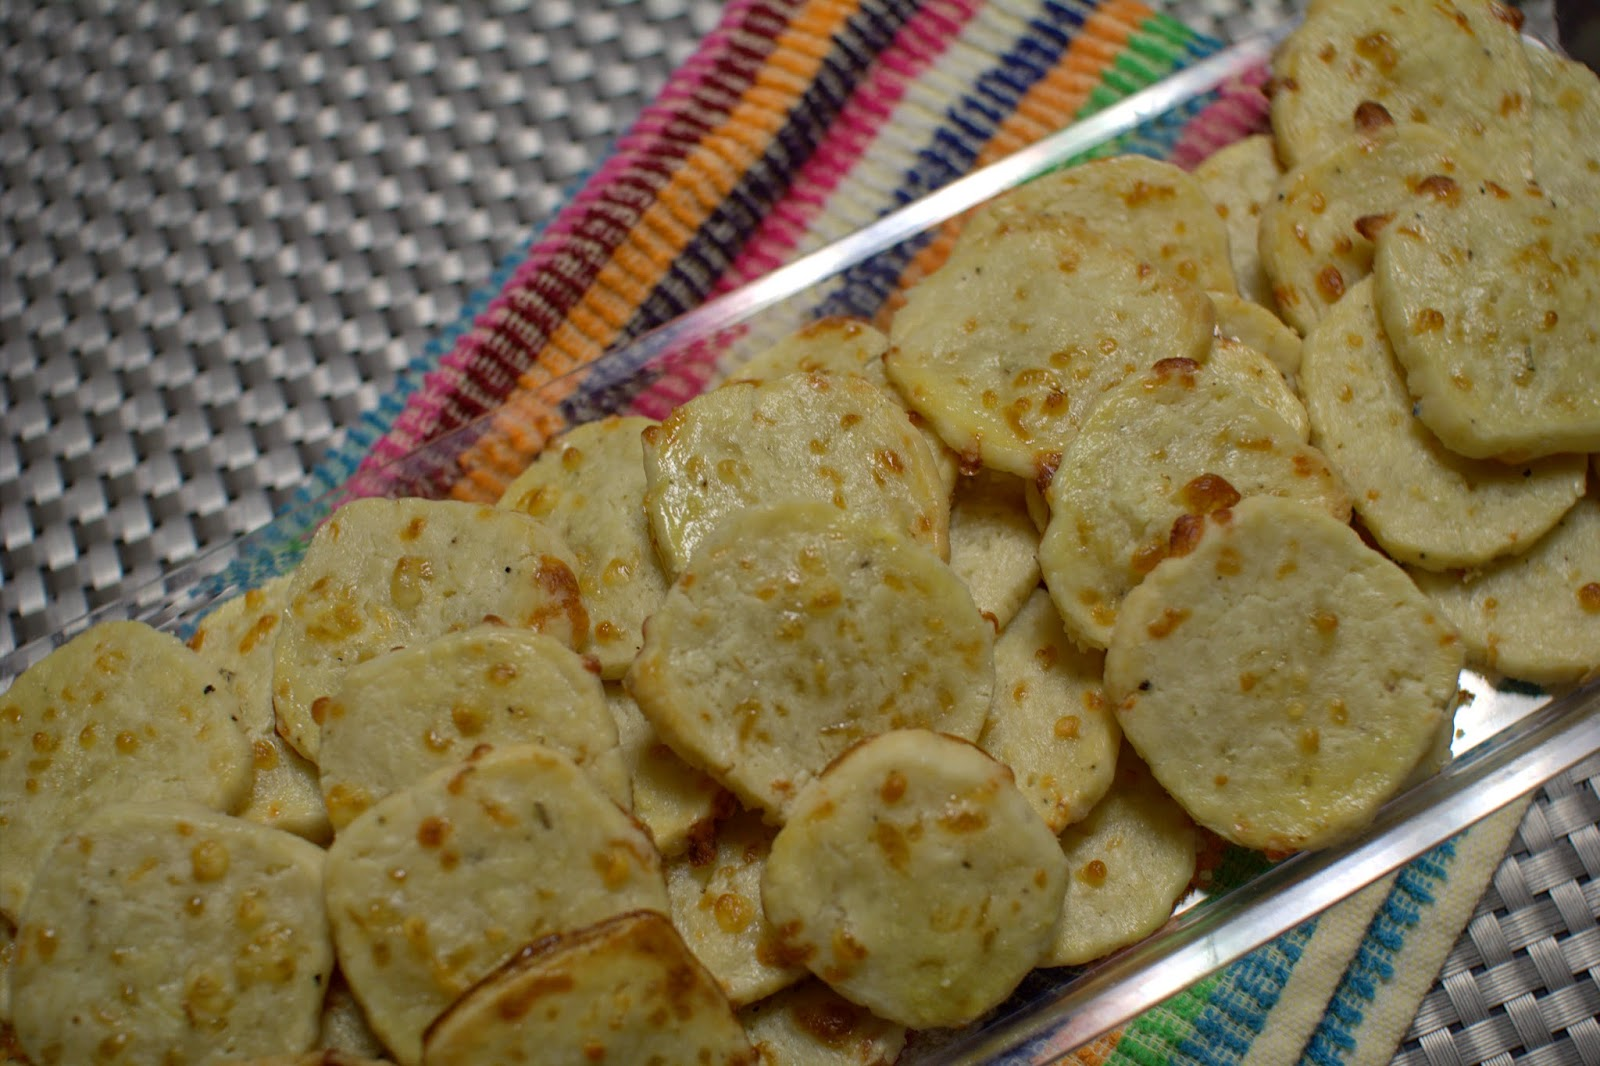 http://www.poolovesboo.com/2014/02/goat-cheese-and-black-pepper-crackers.html